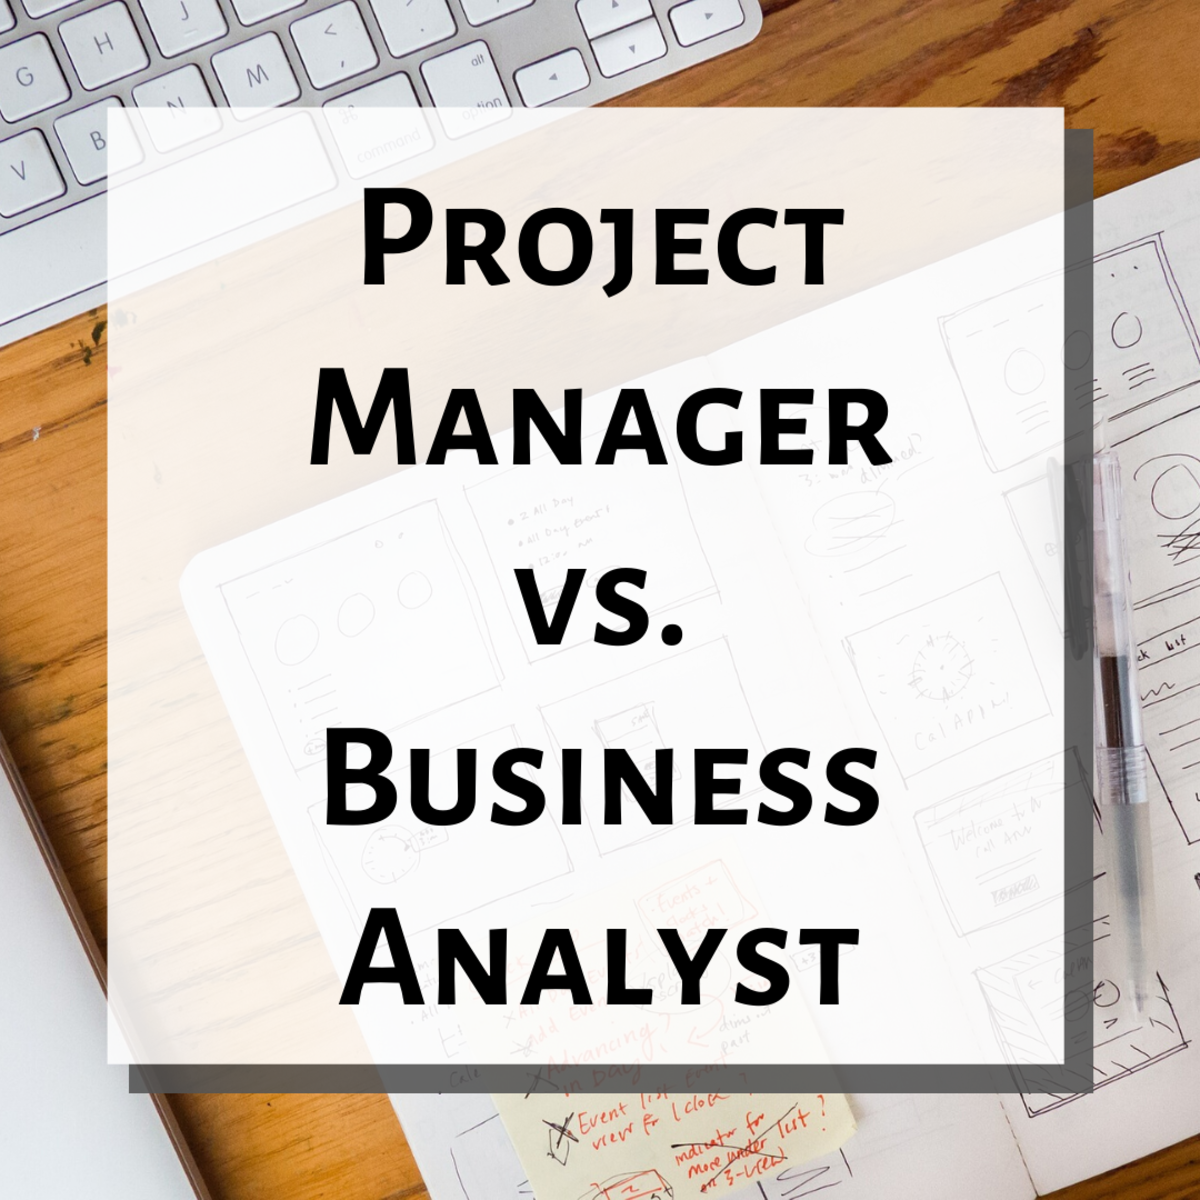 Compare and contrast the roles and duties of project managers and business analysts.